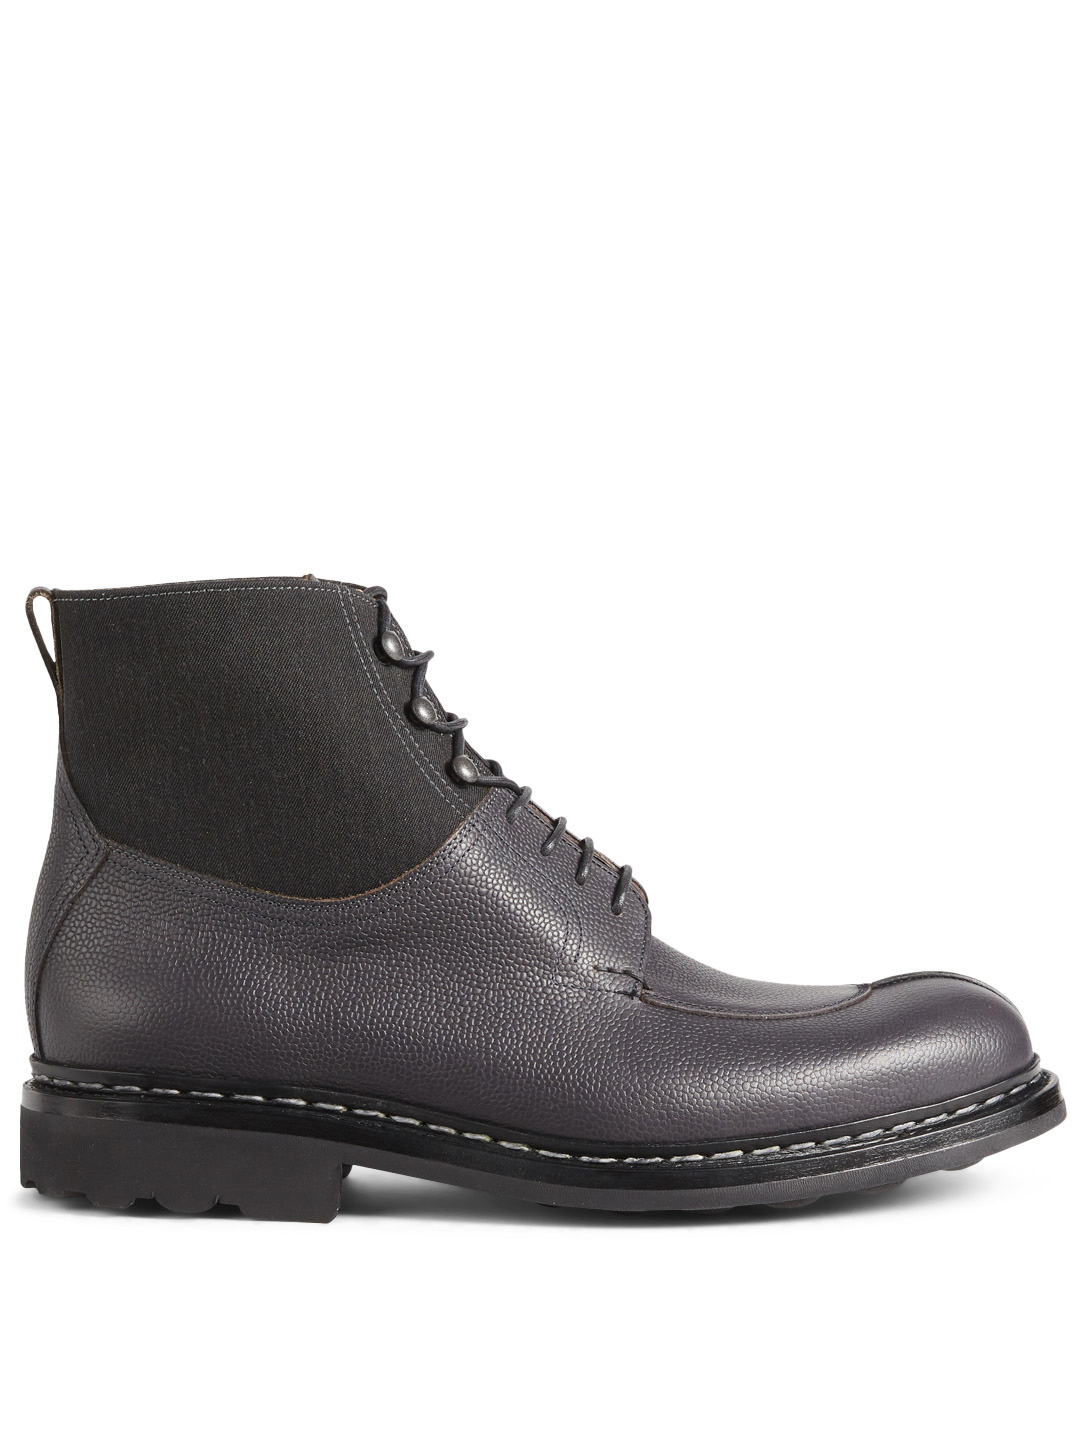 HESCHUNG Ginkgo Leather Lace-Up Boots Men's Black